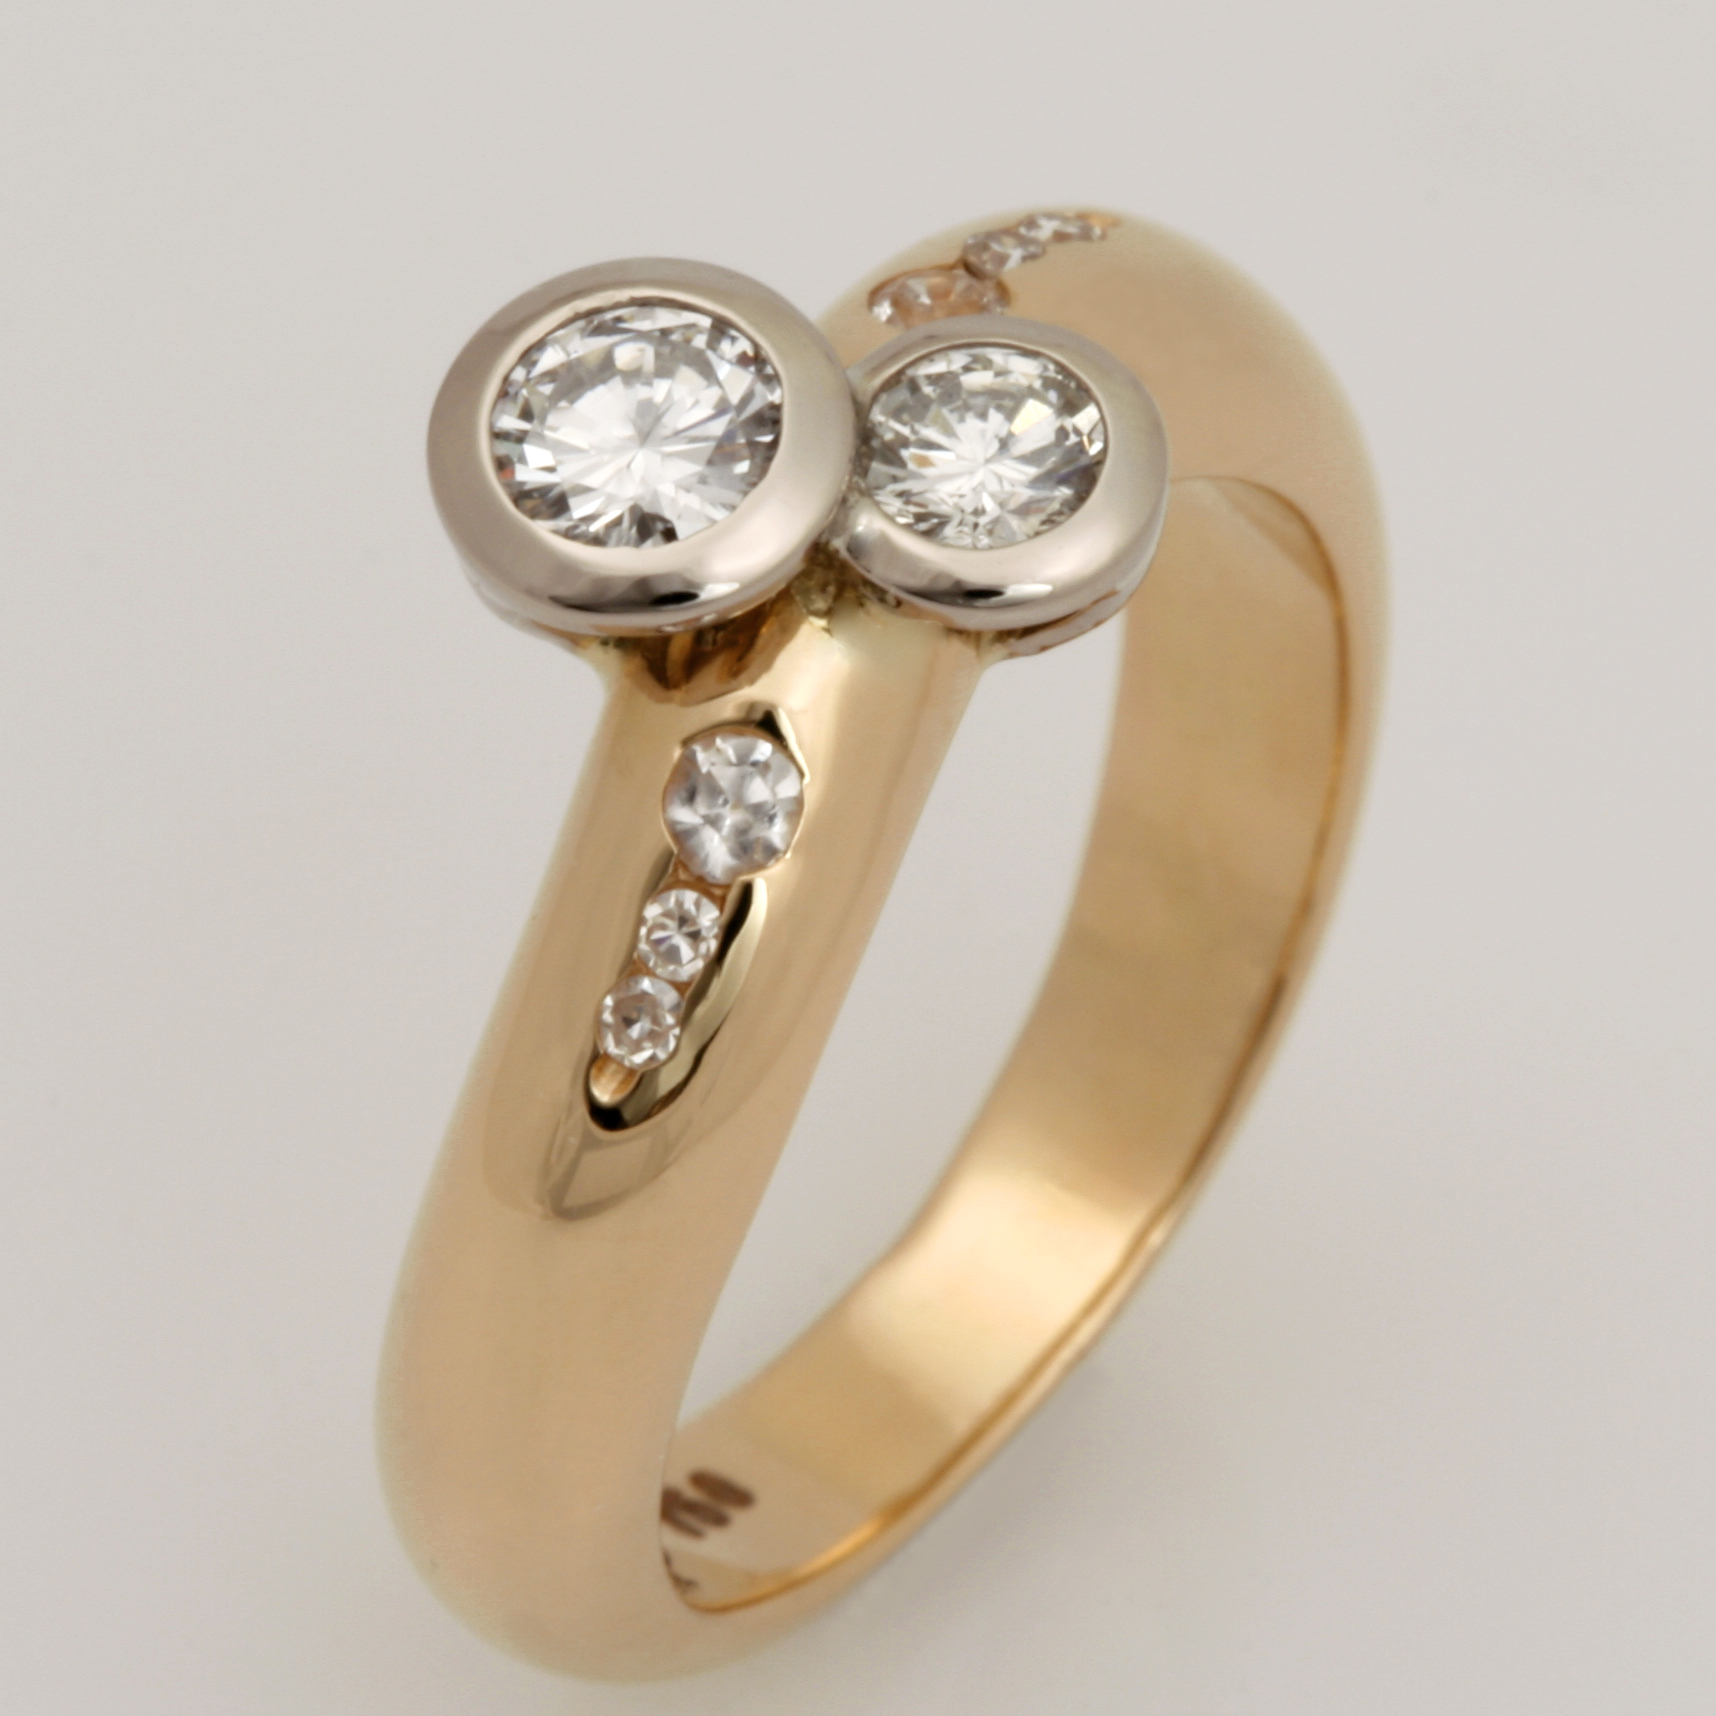 Handmade 18ct yellow gold and diamond ring